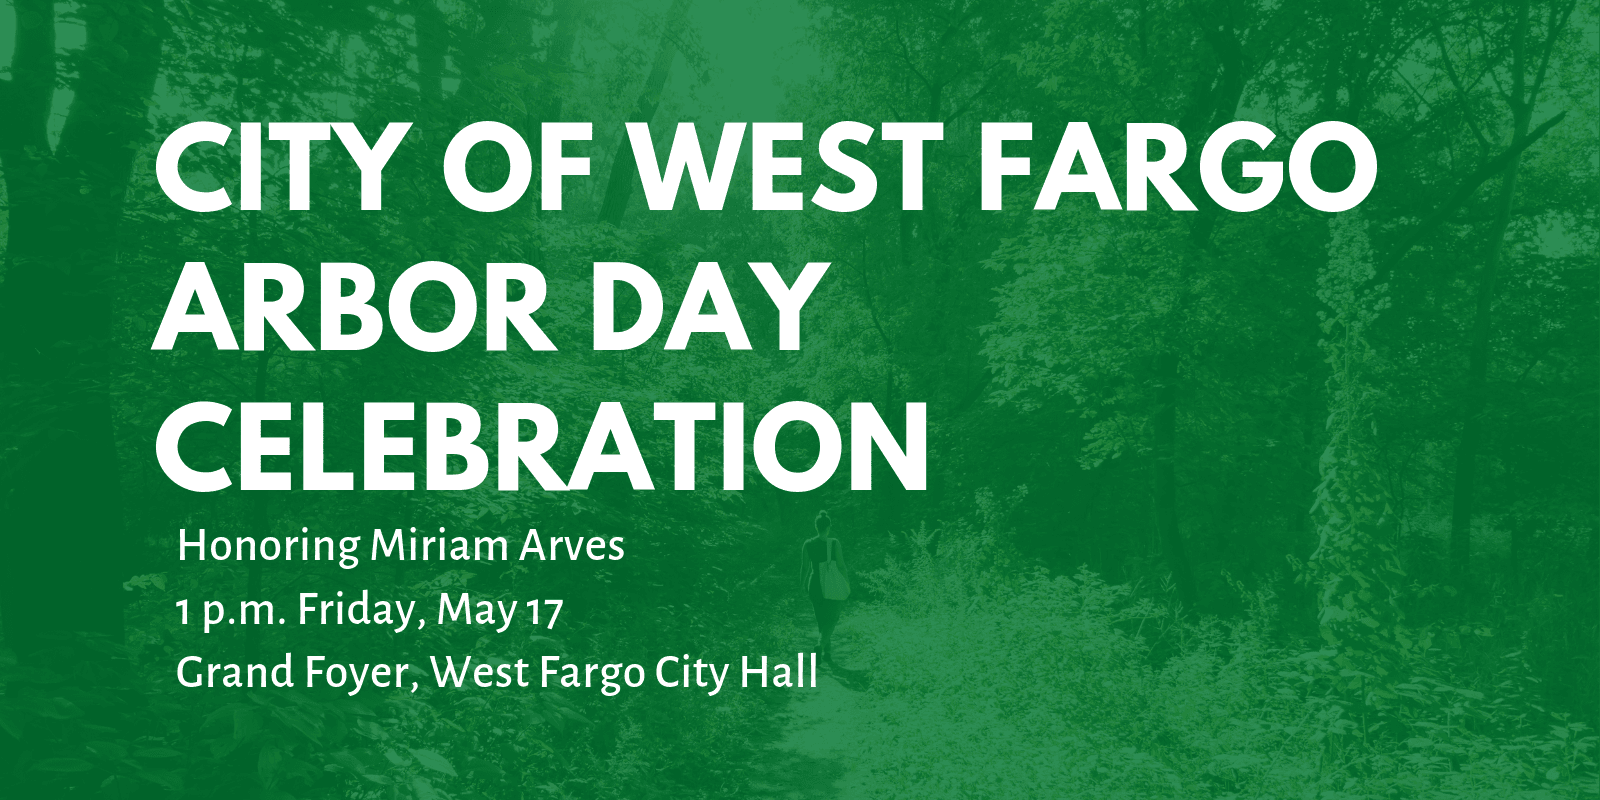 City of West Fargo Arbor Day Celebration